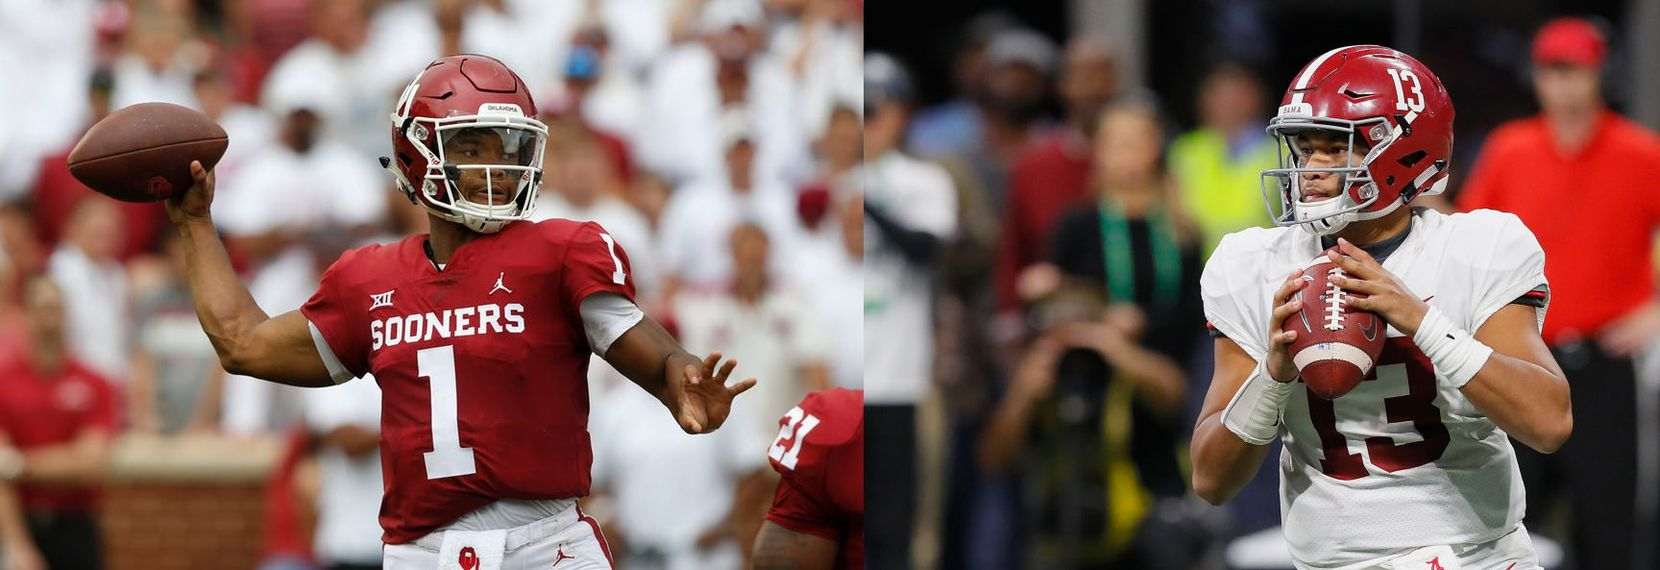 Left: In this Sept. 8, 2018 file photo, Oklahoma quarterback Kyler Murray (1) attempts a pass during a game against UCLA in Norman, Okla. (AP Photo/Sue Ogrocki, File) Right: Alabama's Tua Tagovailoa (13) looks to pass the ball against Georgia during the SEC Championship Game at Mercedes-Benz Stadium on Dec. 1, 2018, in Atlanta. (Photo by Kevin C. Cox/Getty Images)